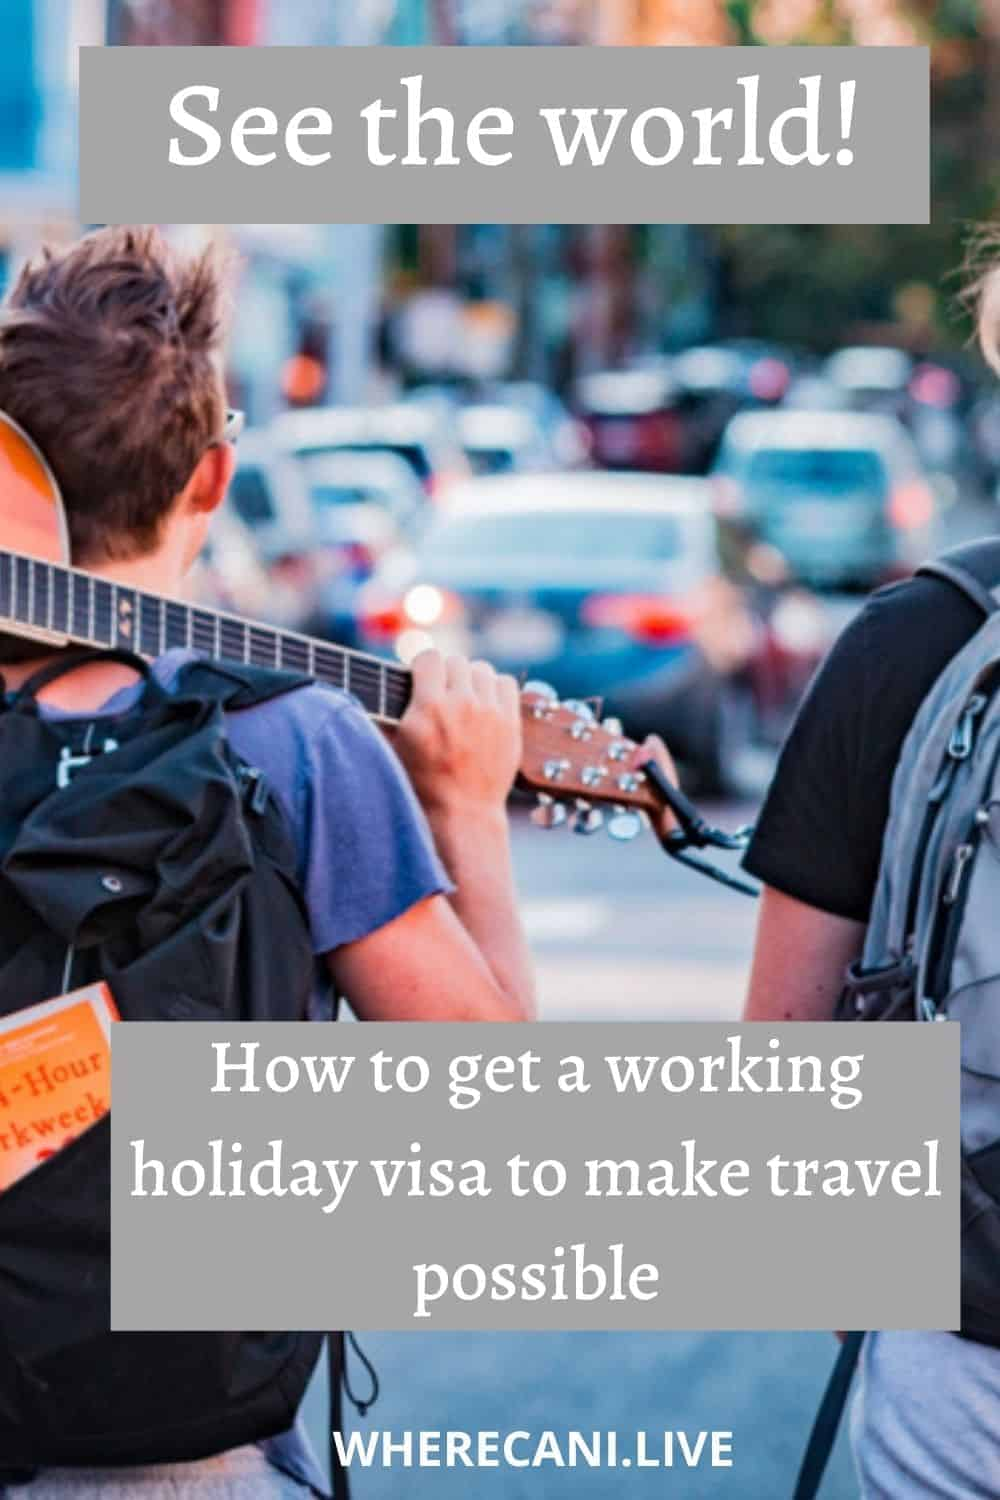 See the world through the working holiday visa program. We will show you how. #workingholiday #visa #expat #expatlife #travel #travelandwork via @wherecanilive